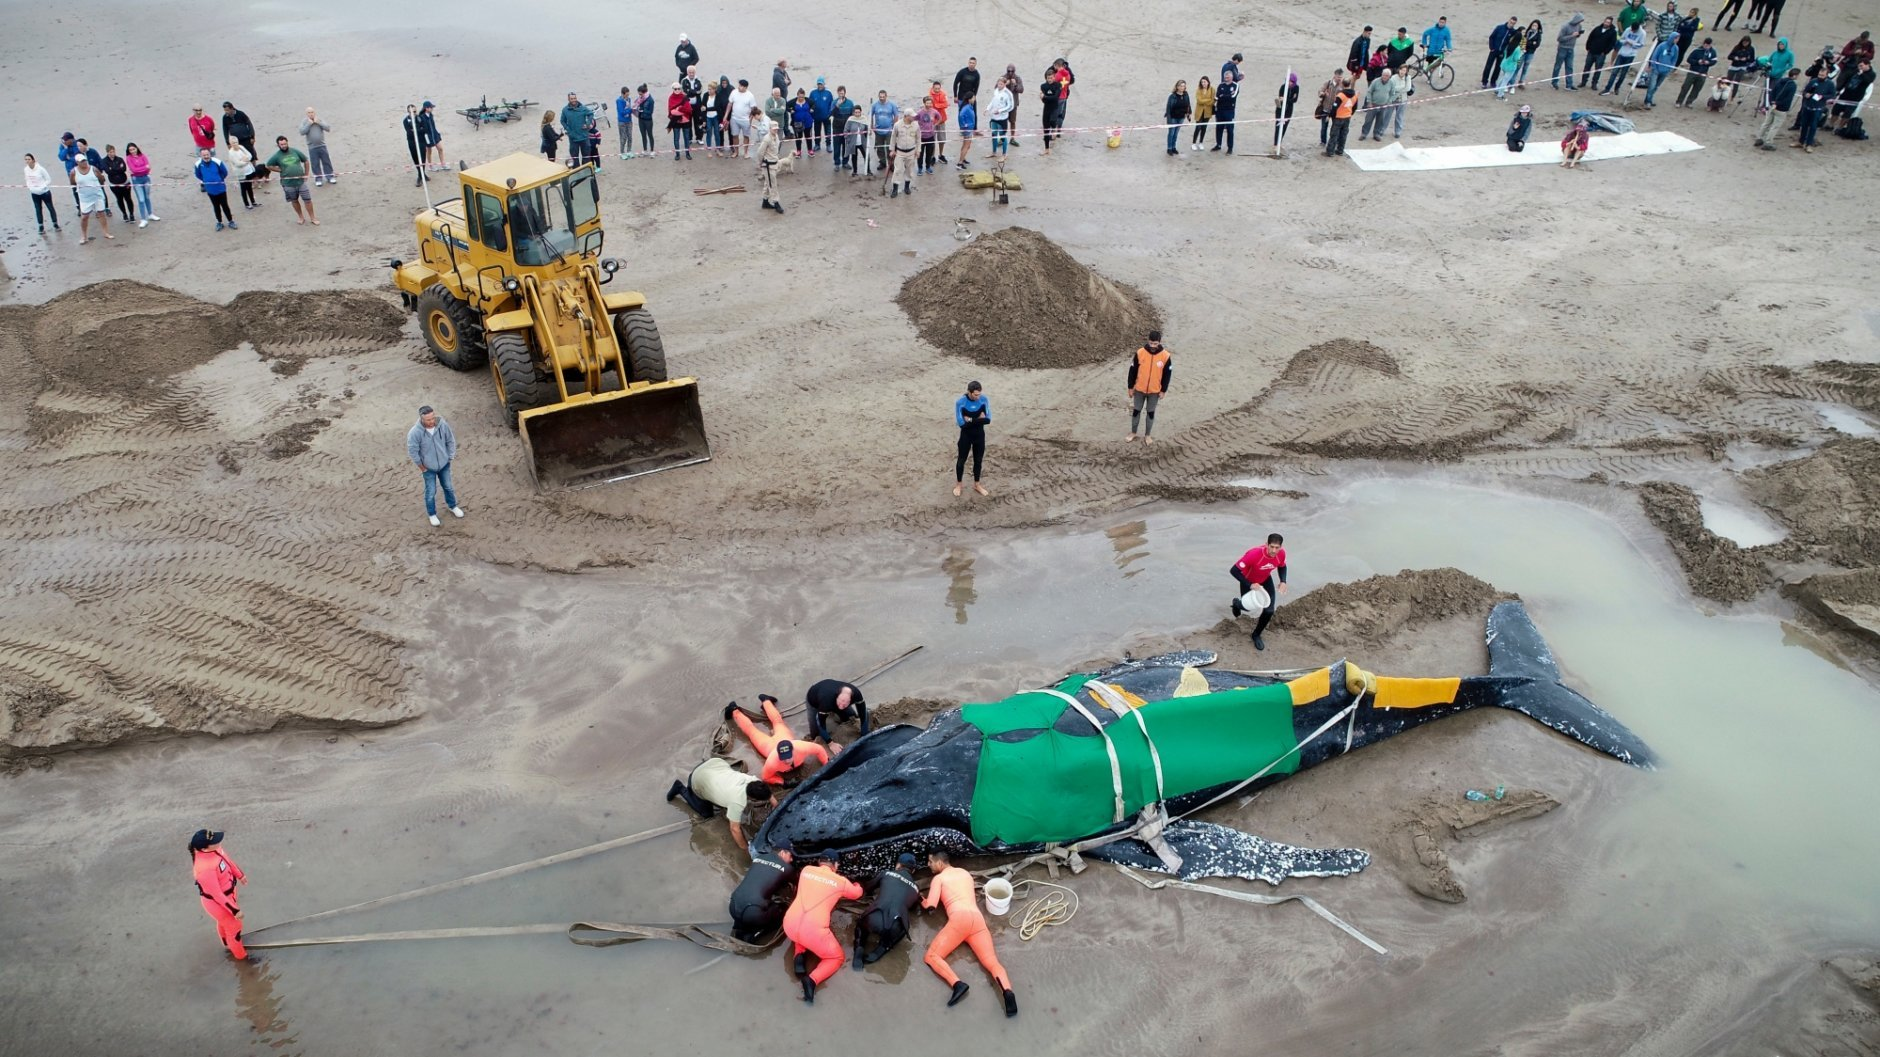 In this Monday, April 9, 2018 photo, members of the Argentine Naval Prefecture and volunteers try in vein to rescue a stranded humpback whale in Mar del Plata, Argentina. The whale stranded on Argentina's coast died Monday despite a round-the-clock rescue effort over the weekend that drew in dozens of volunteers. (AP Photo/Pablo Hugo Funes)